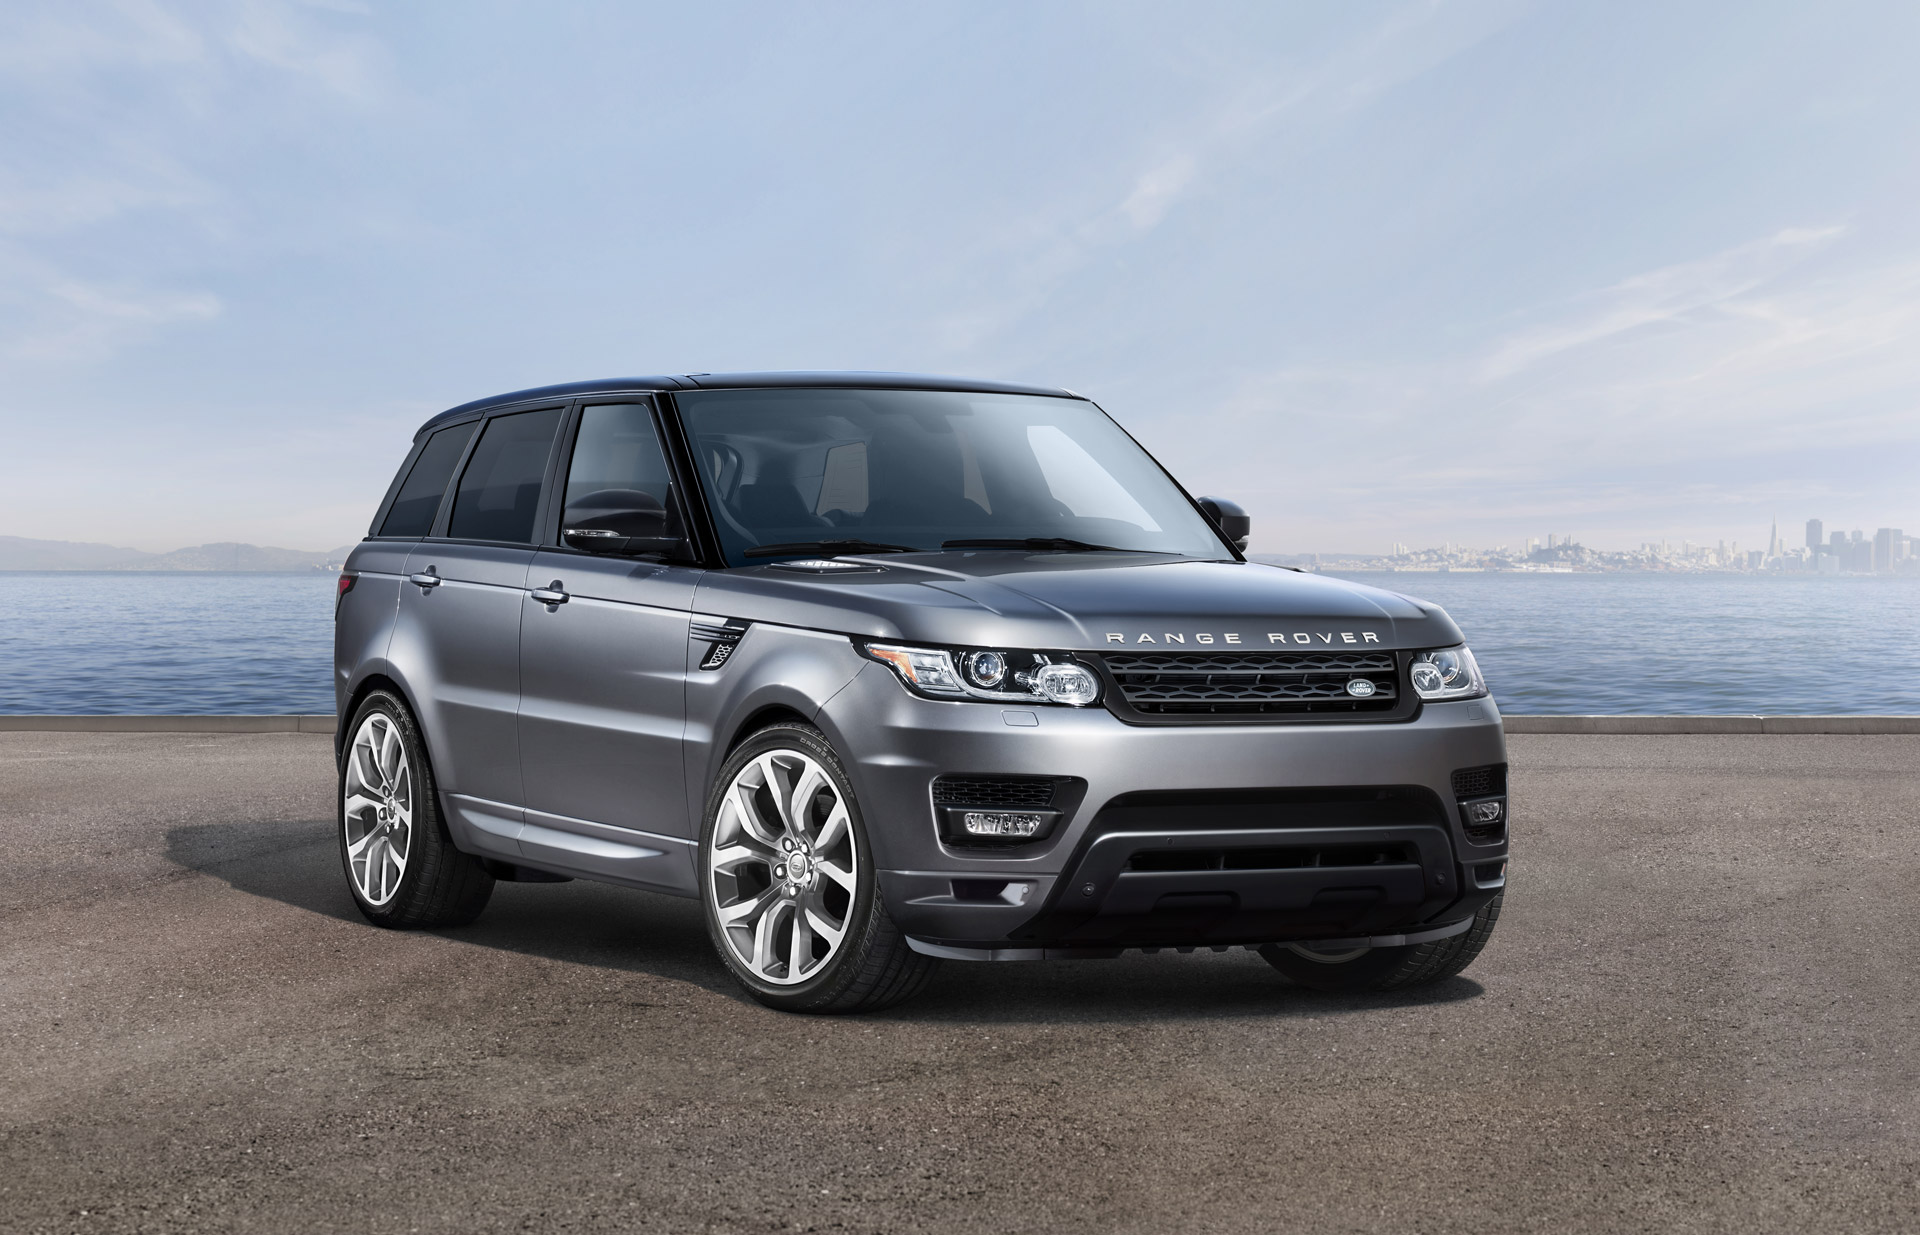 Range Rover Houston